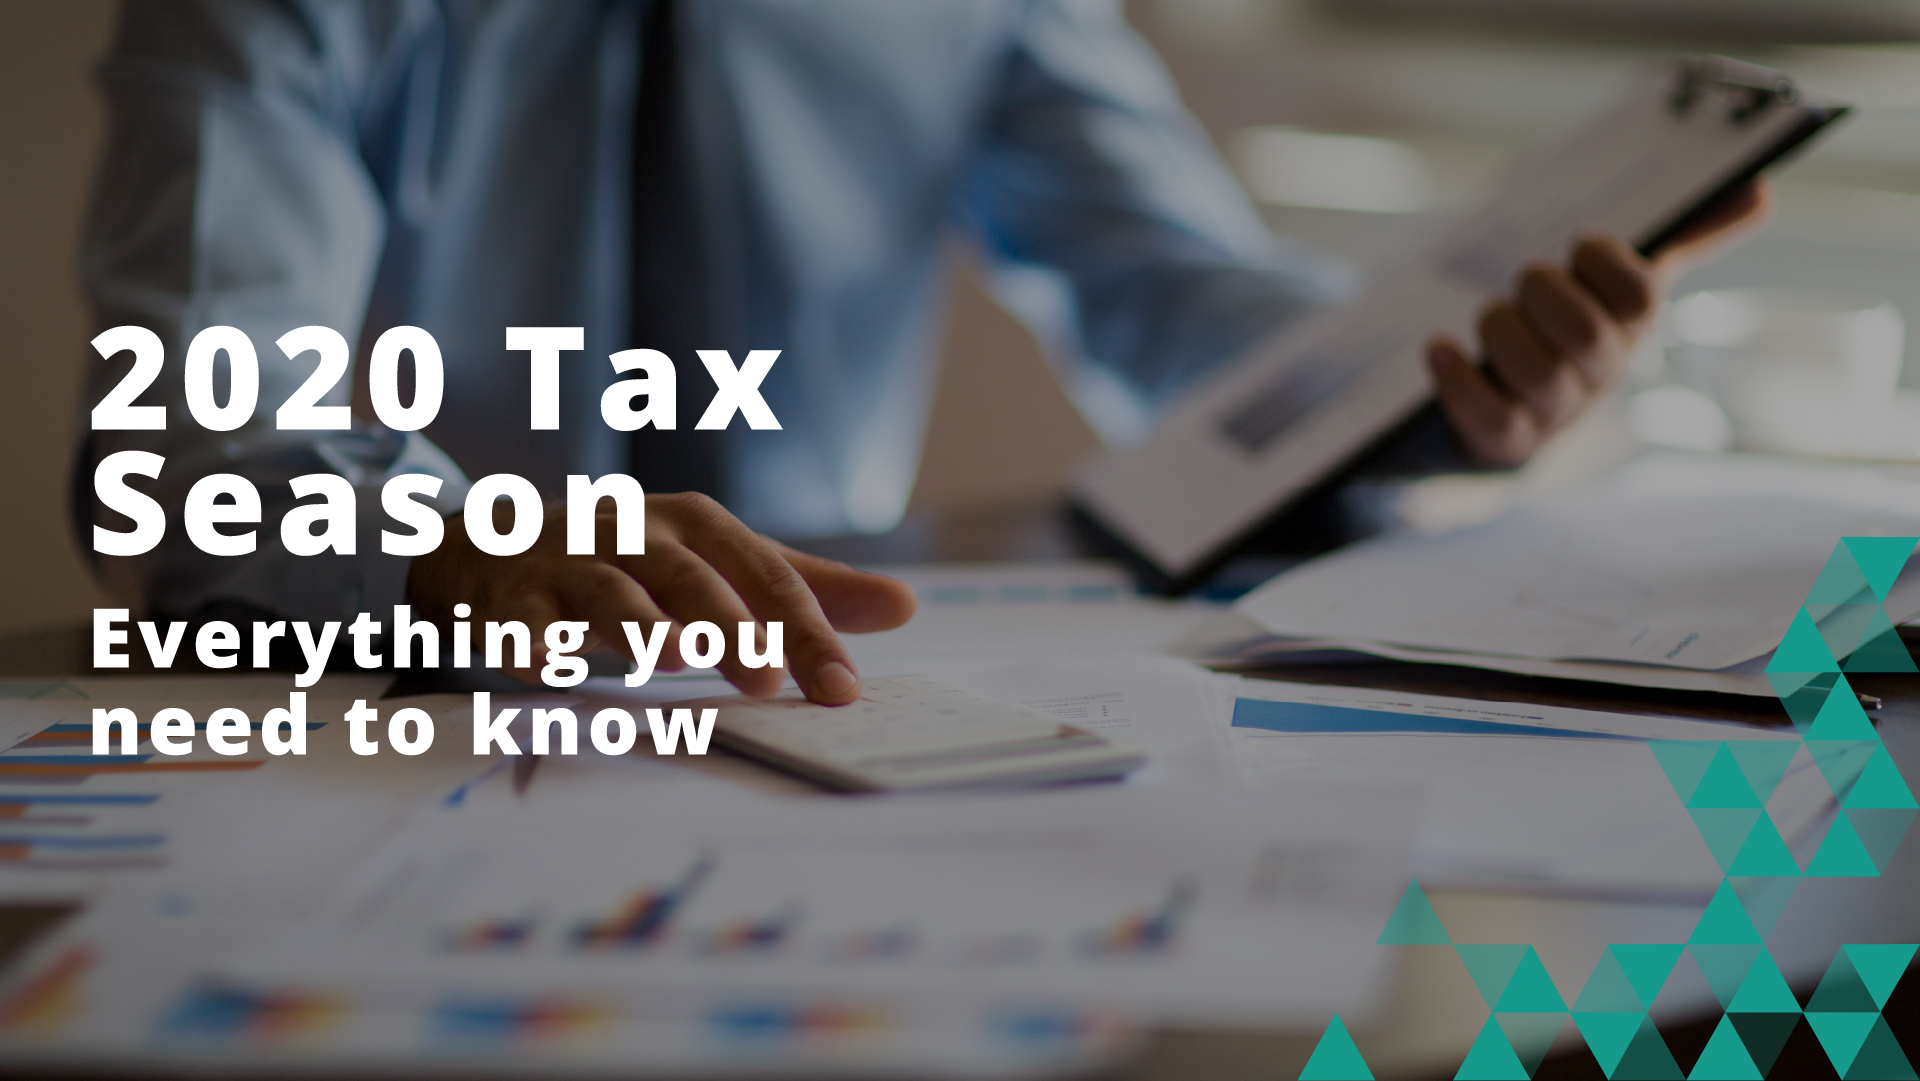 2020 Tax Season—Everything you need to know